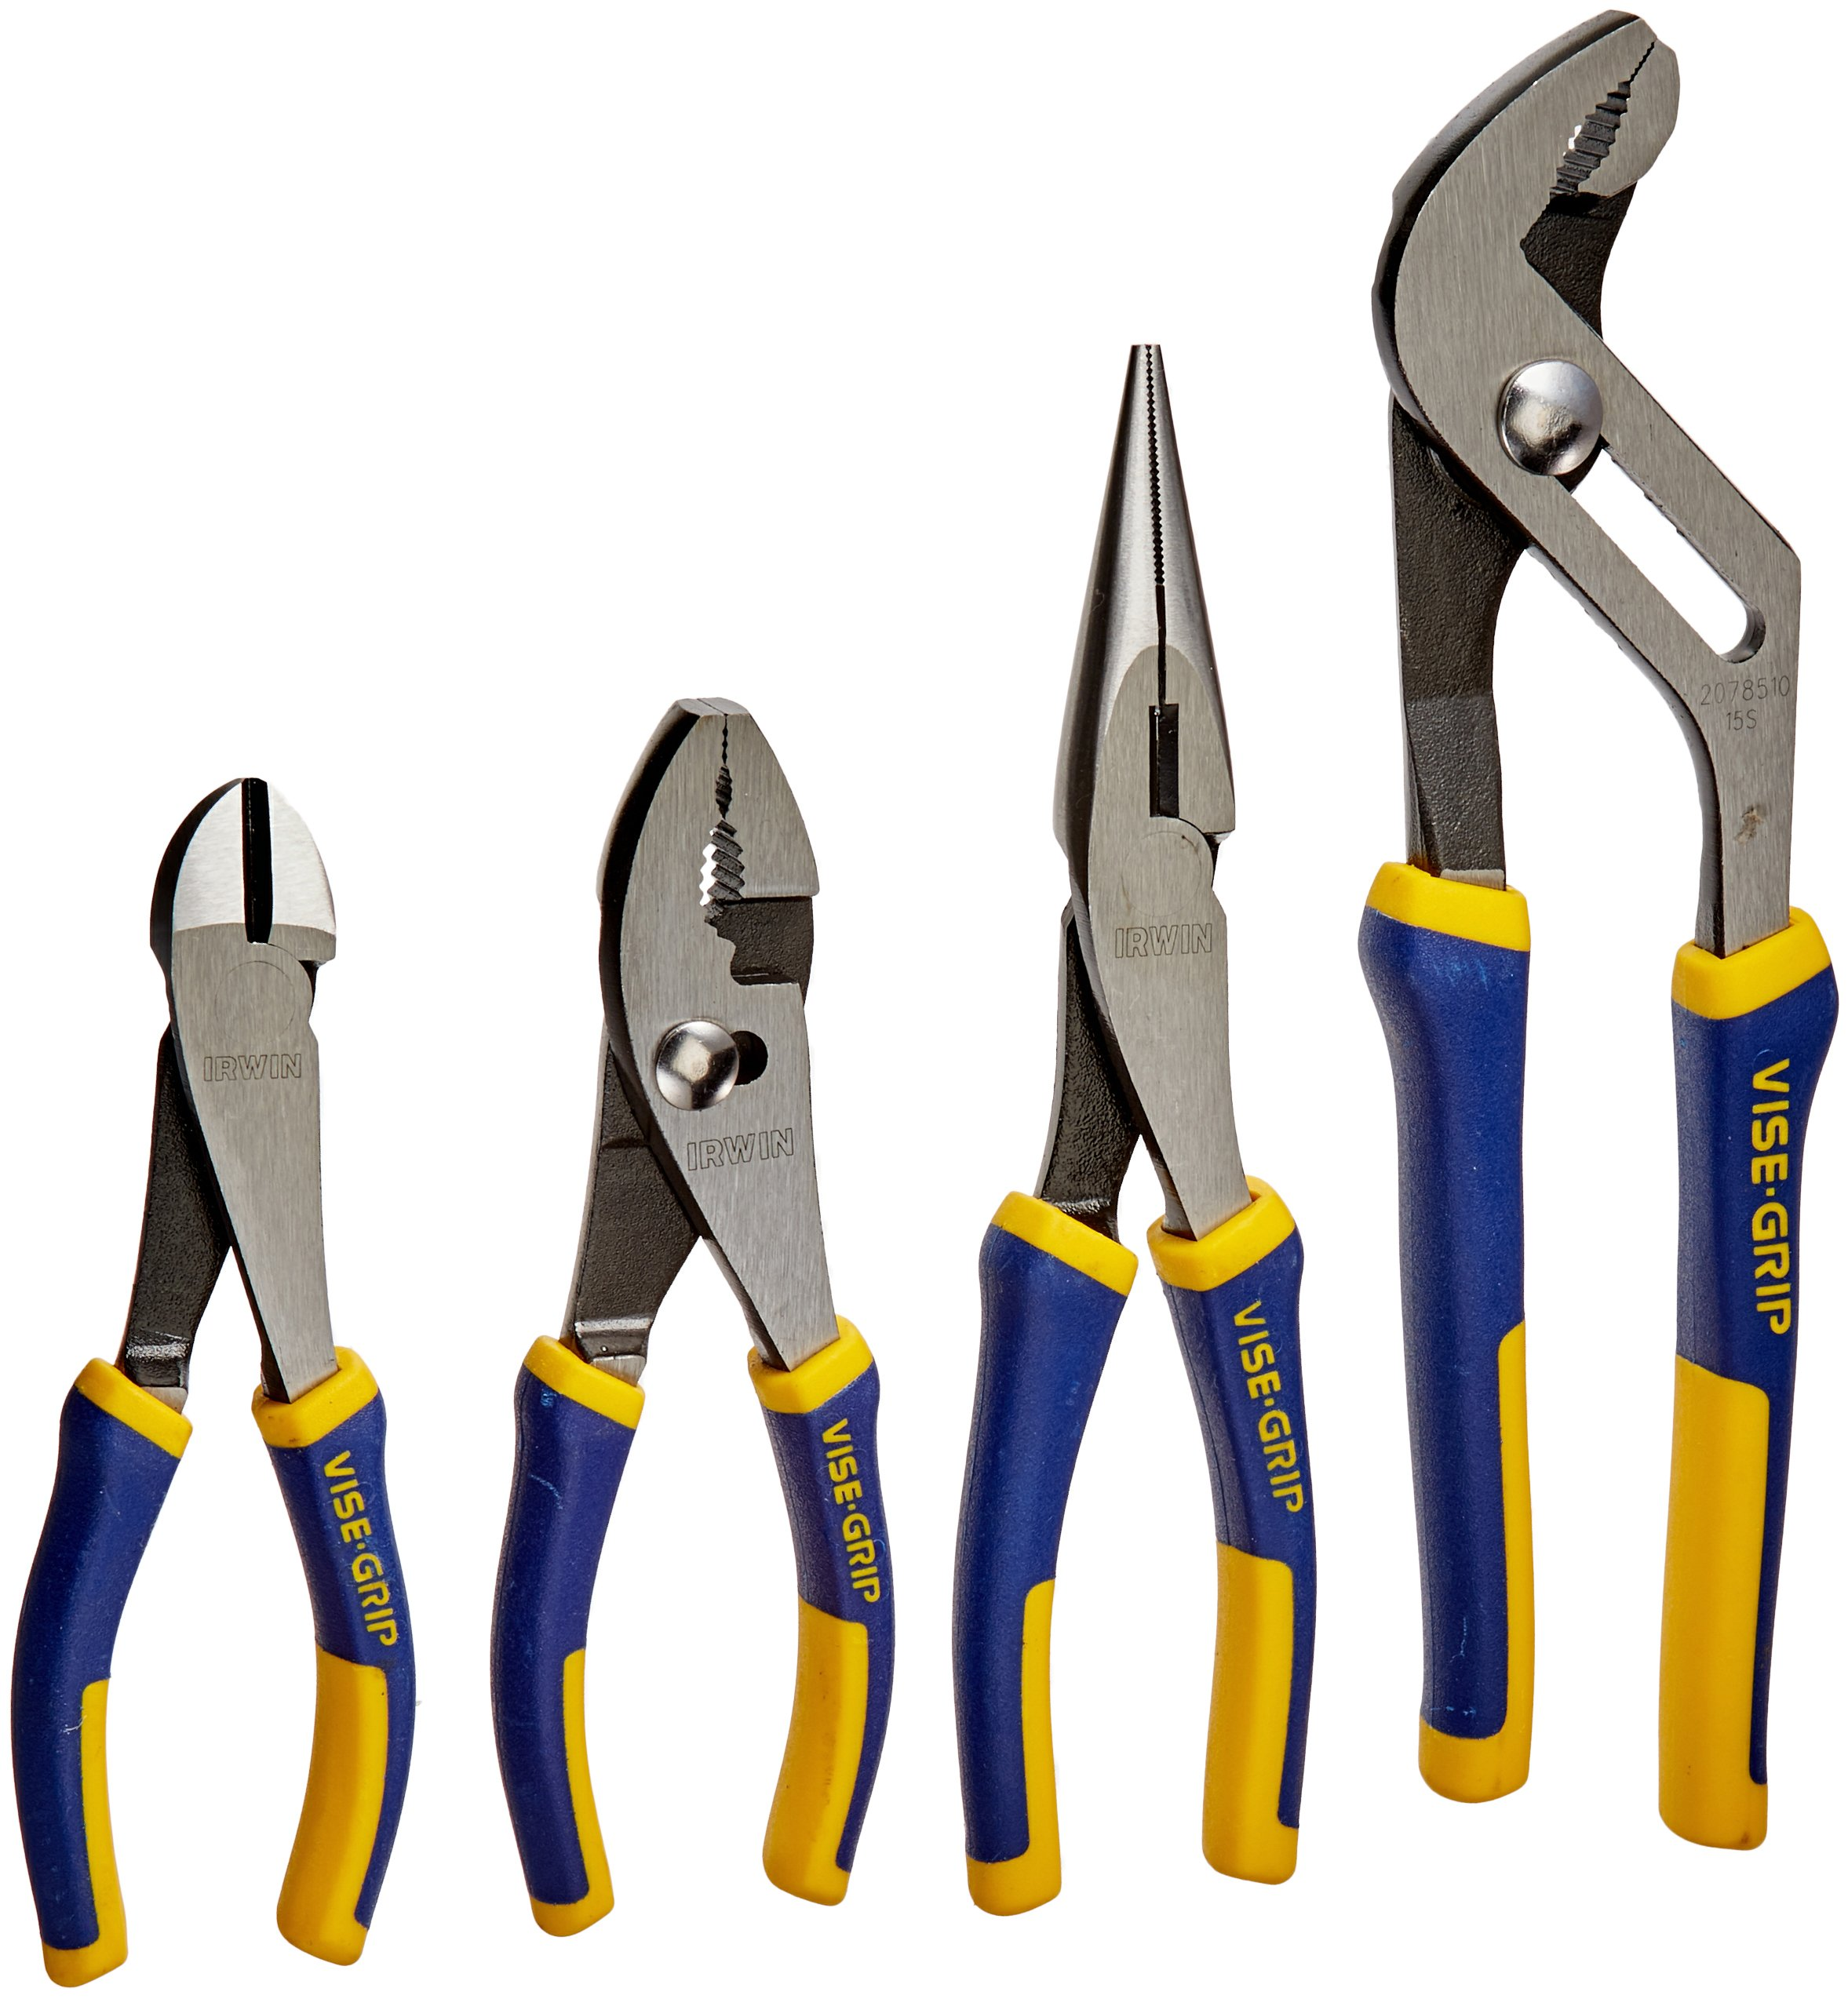 IRWIN VISE-GRIP Pliers Set, 4-Piece (2078707) by Irwin Tools